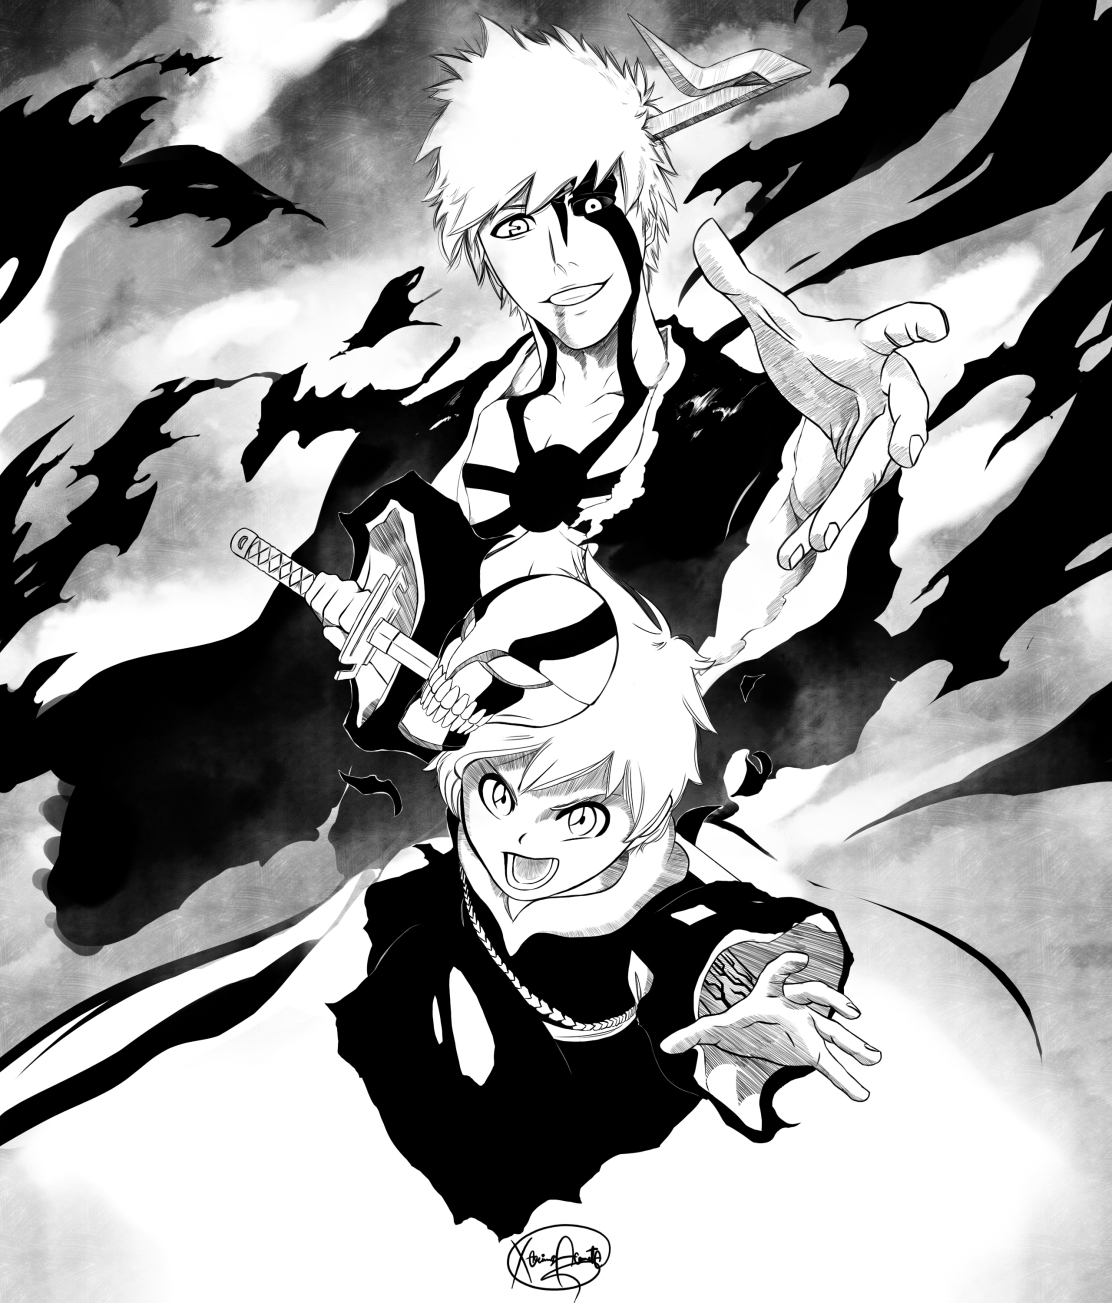 the-end-is-where-we-begin-bleach-ichigo-kazui-kurosaki-by-maithagor